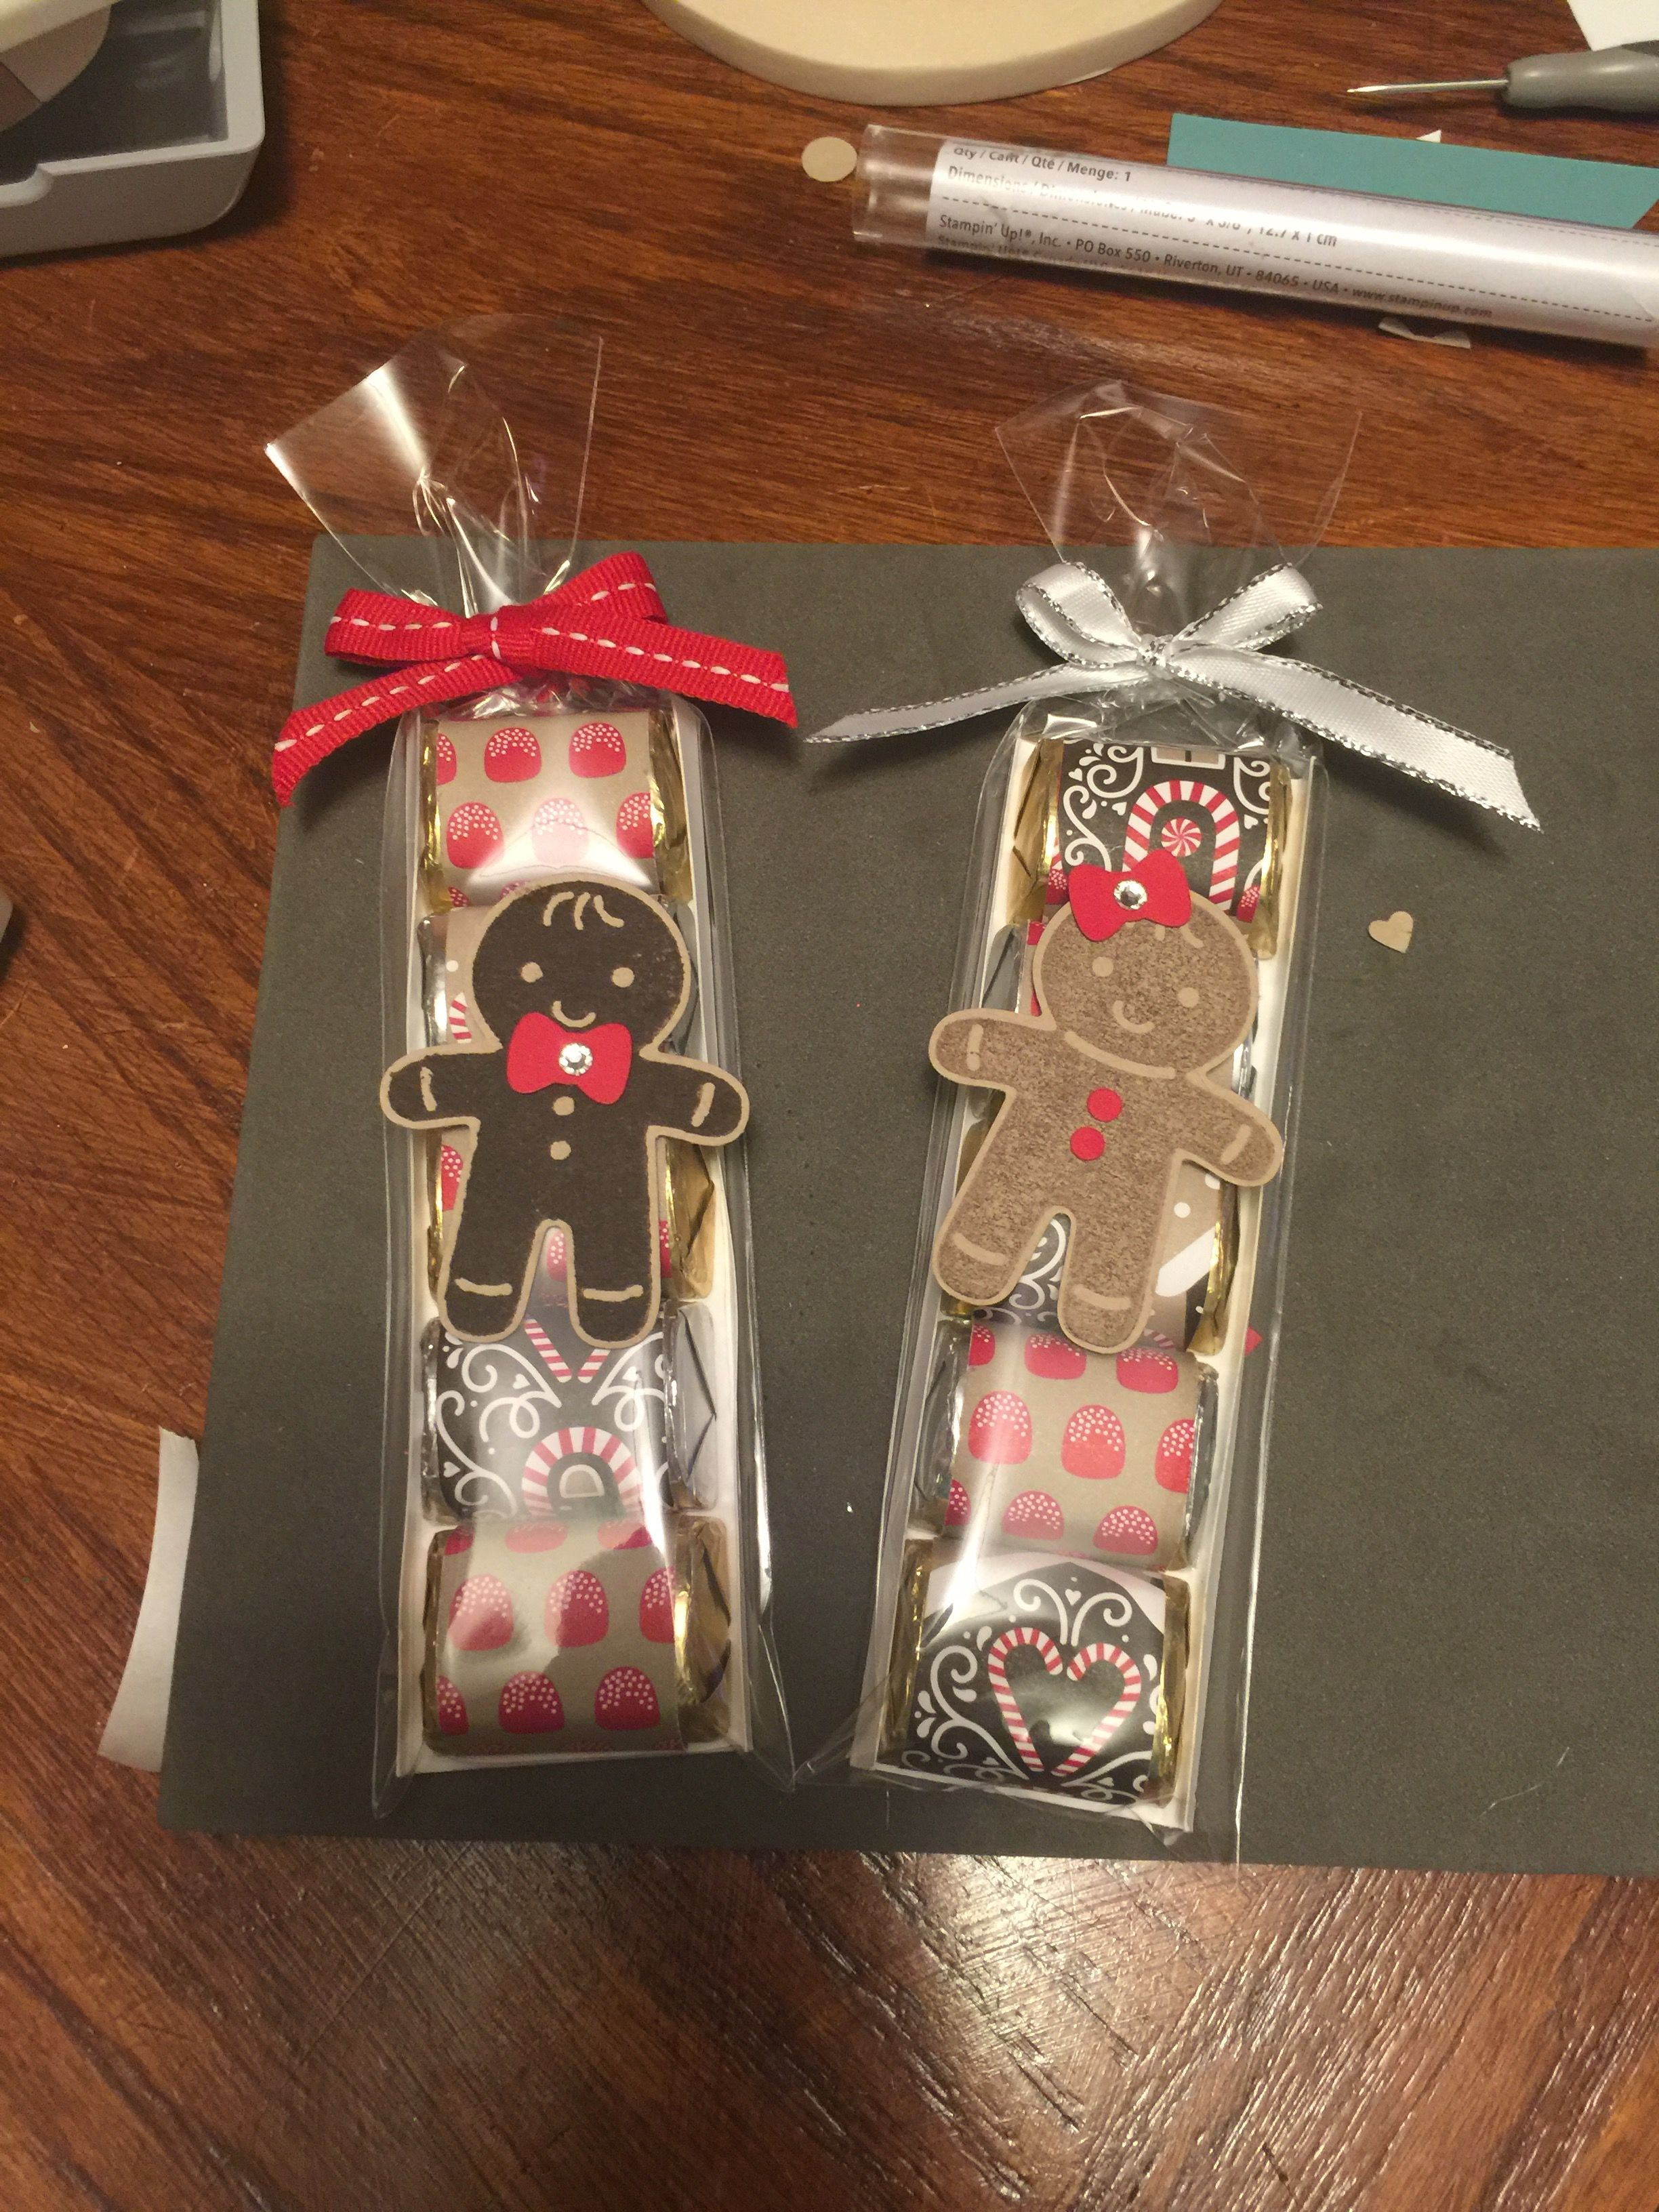 Christmas In Hershey 2019 Hershey Nuggets, $3.50 each These were made using Stampin' Up